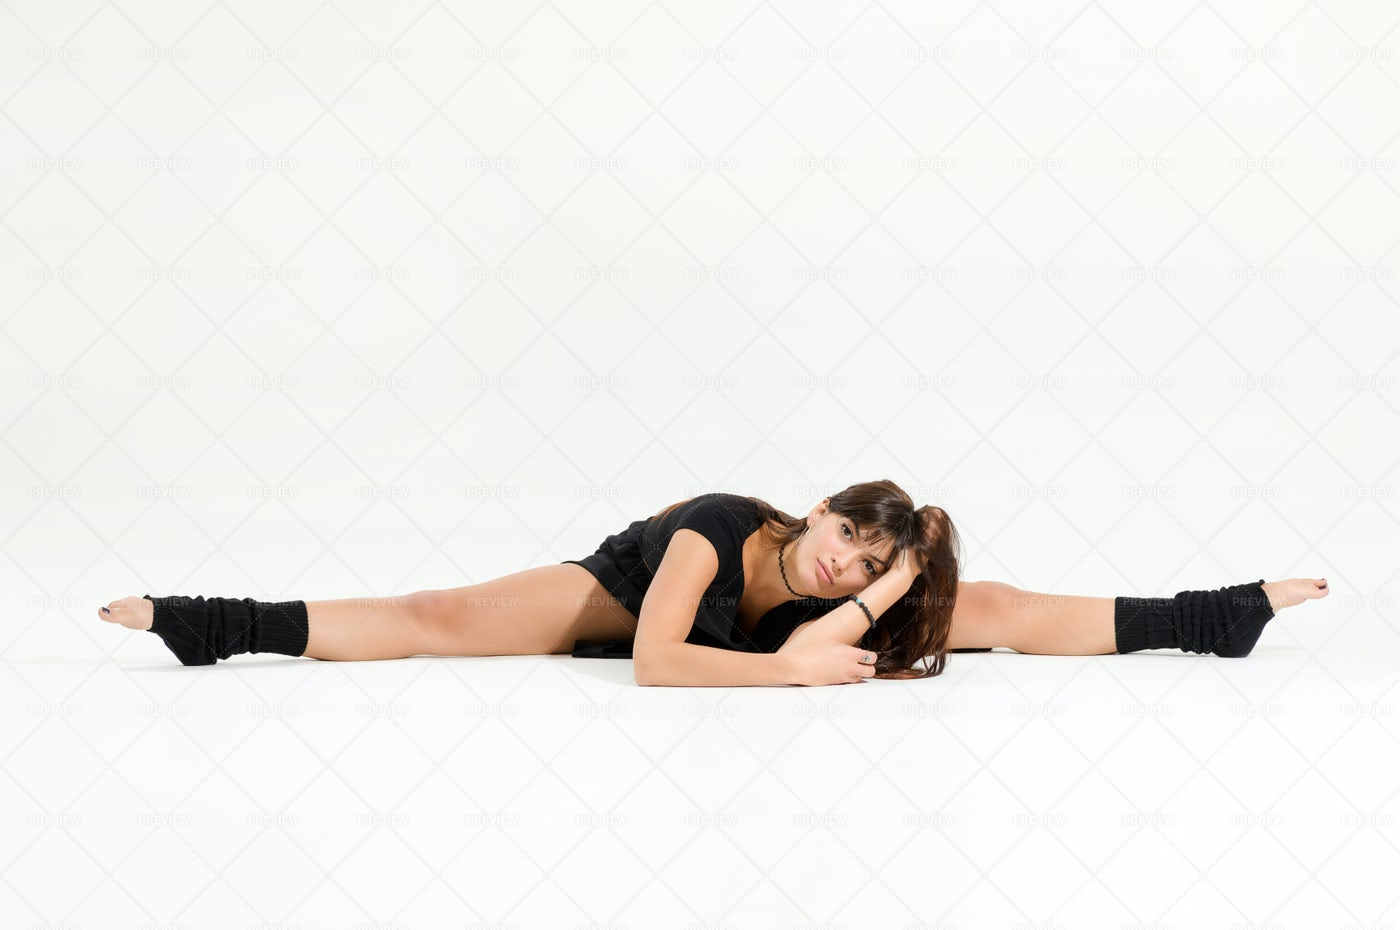 Professional Dancer Performing Middle Sp: Stock Photos